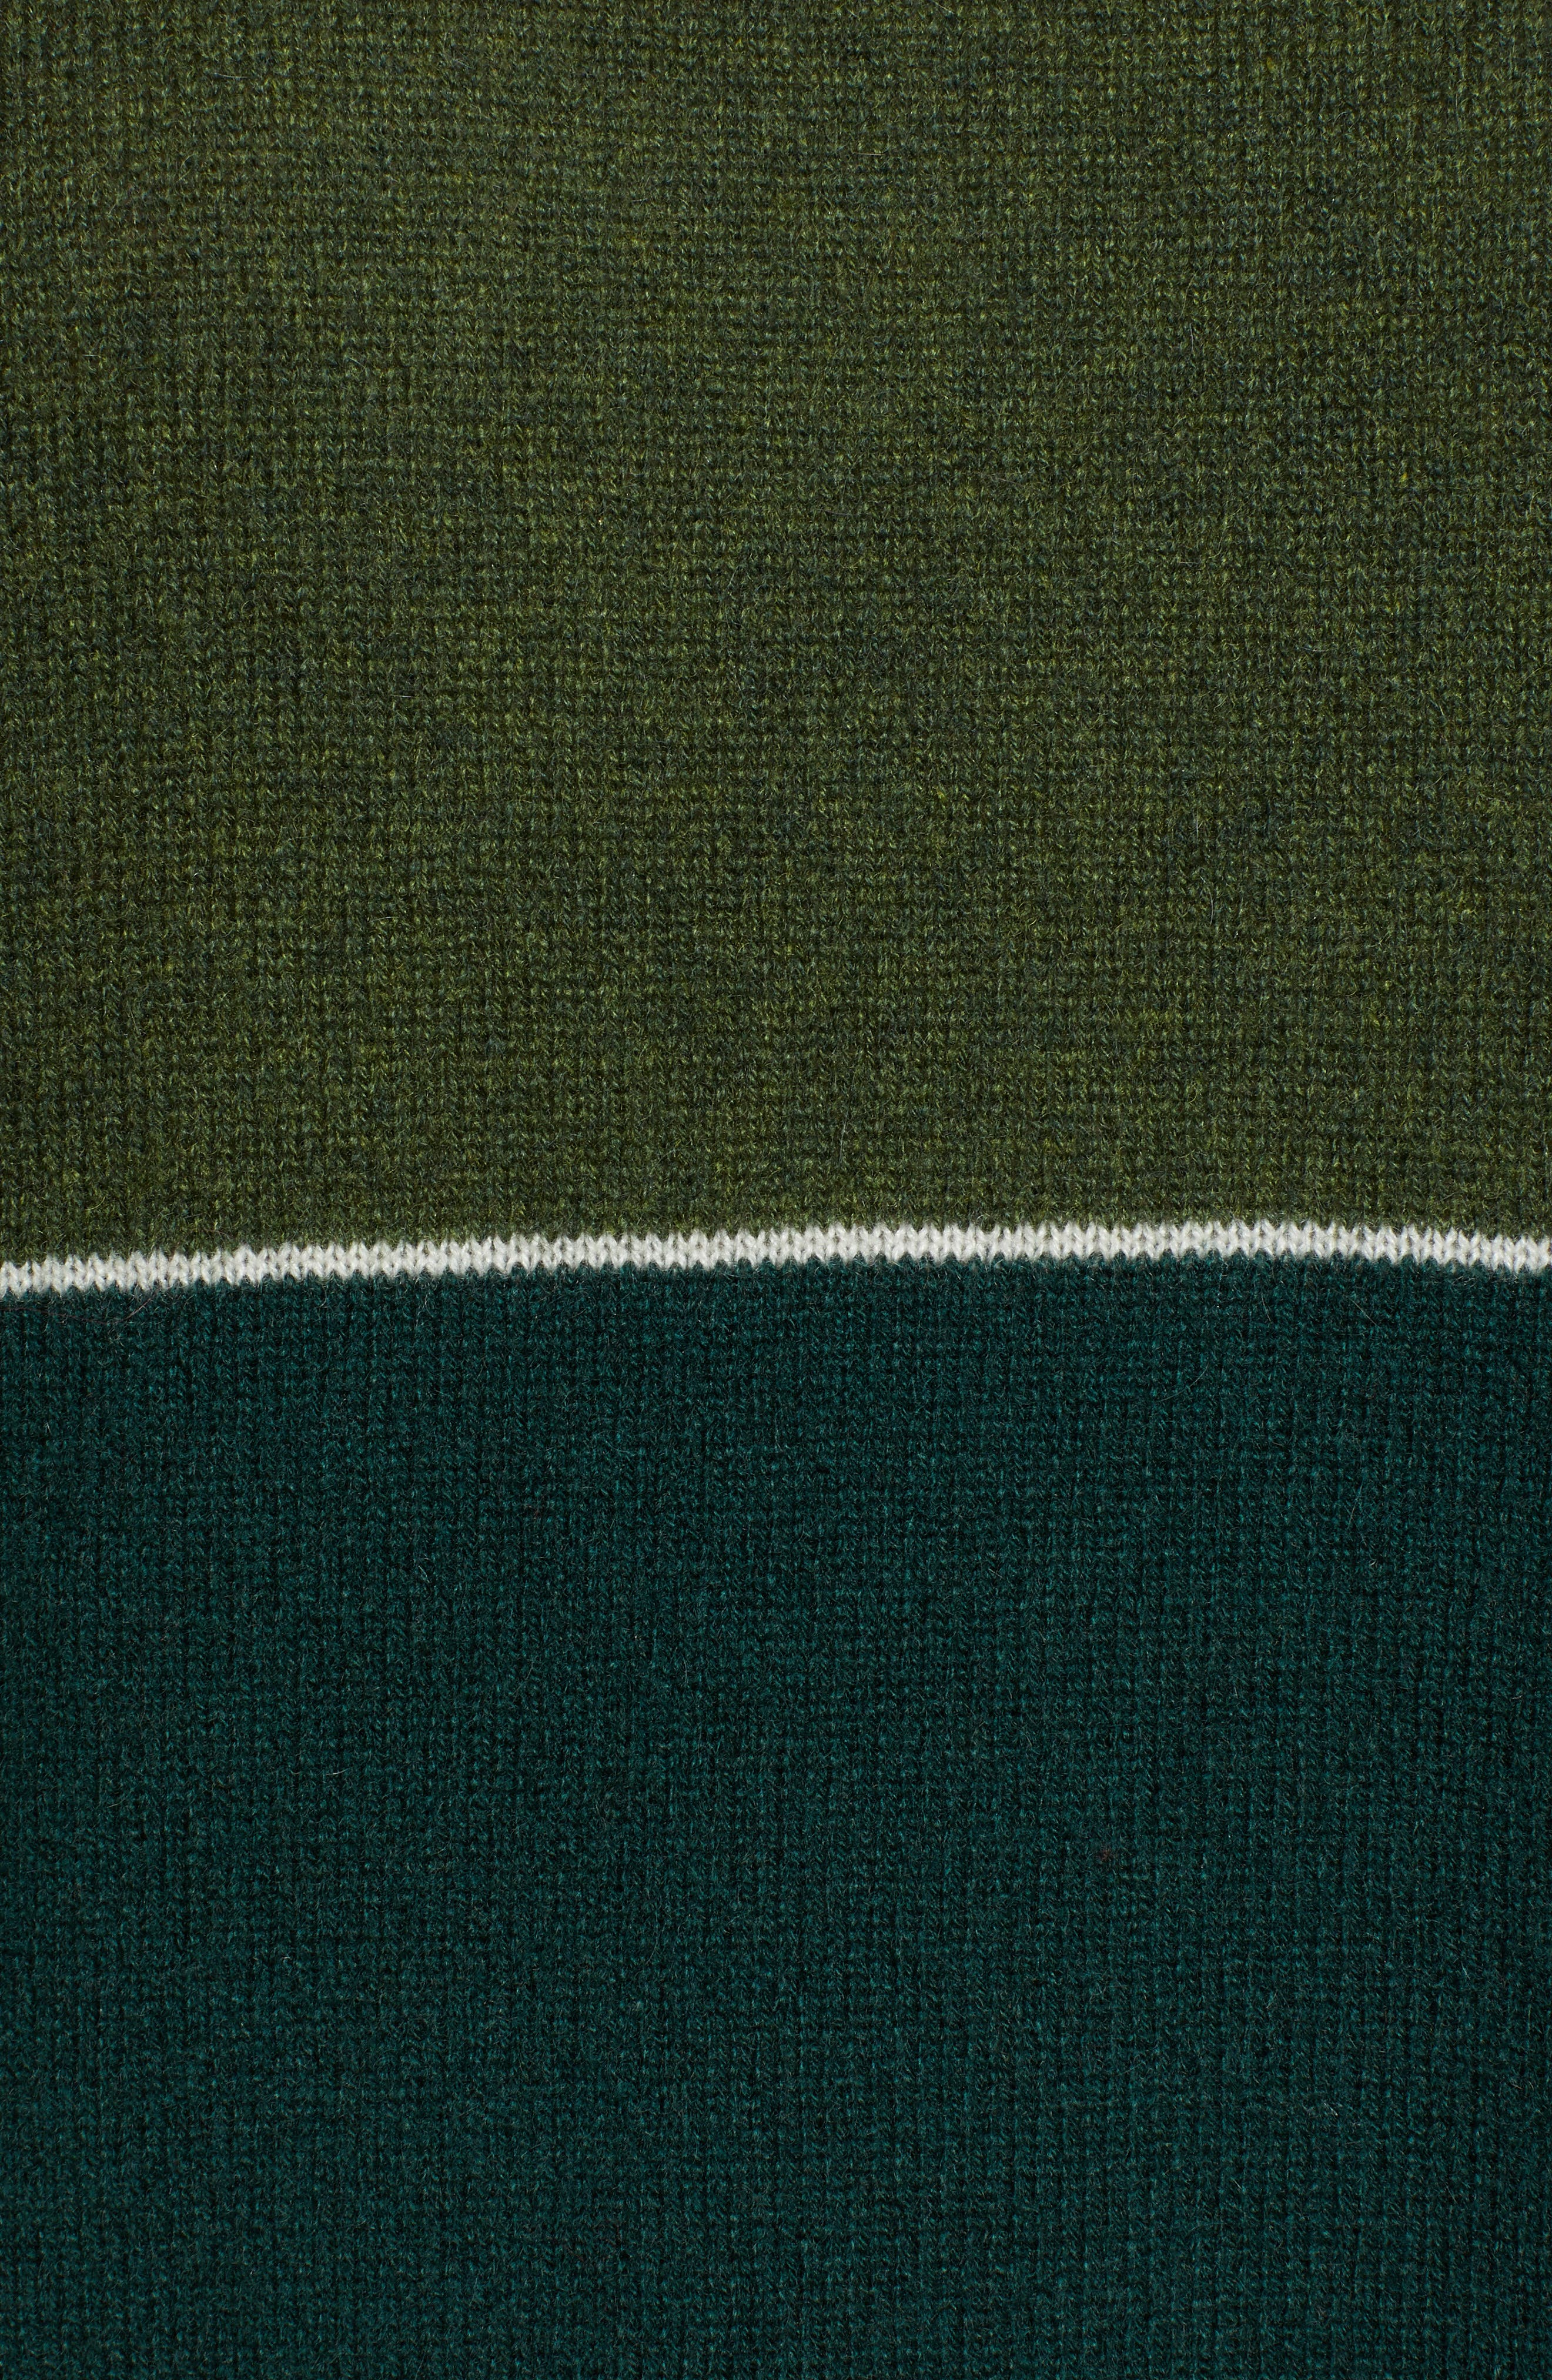 Cashmere Colorblock Sweater,                             Alternate thumbnail 5, color,                             FOREST/ ARMY